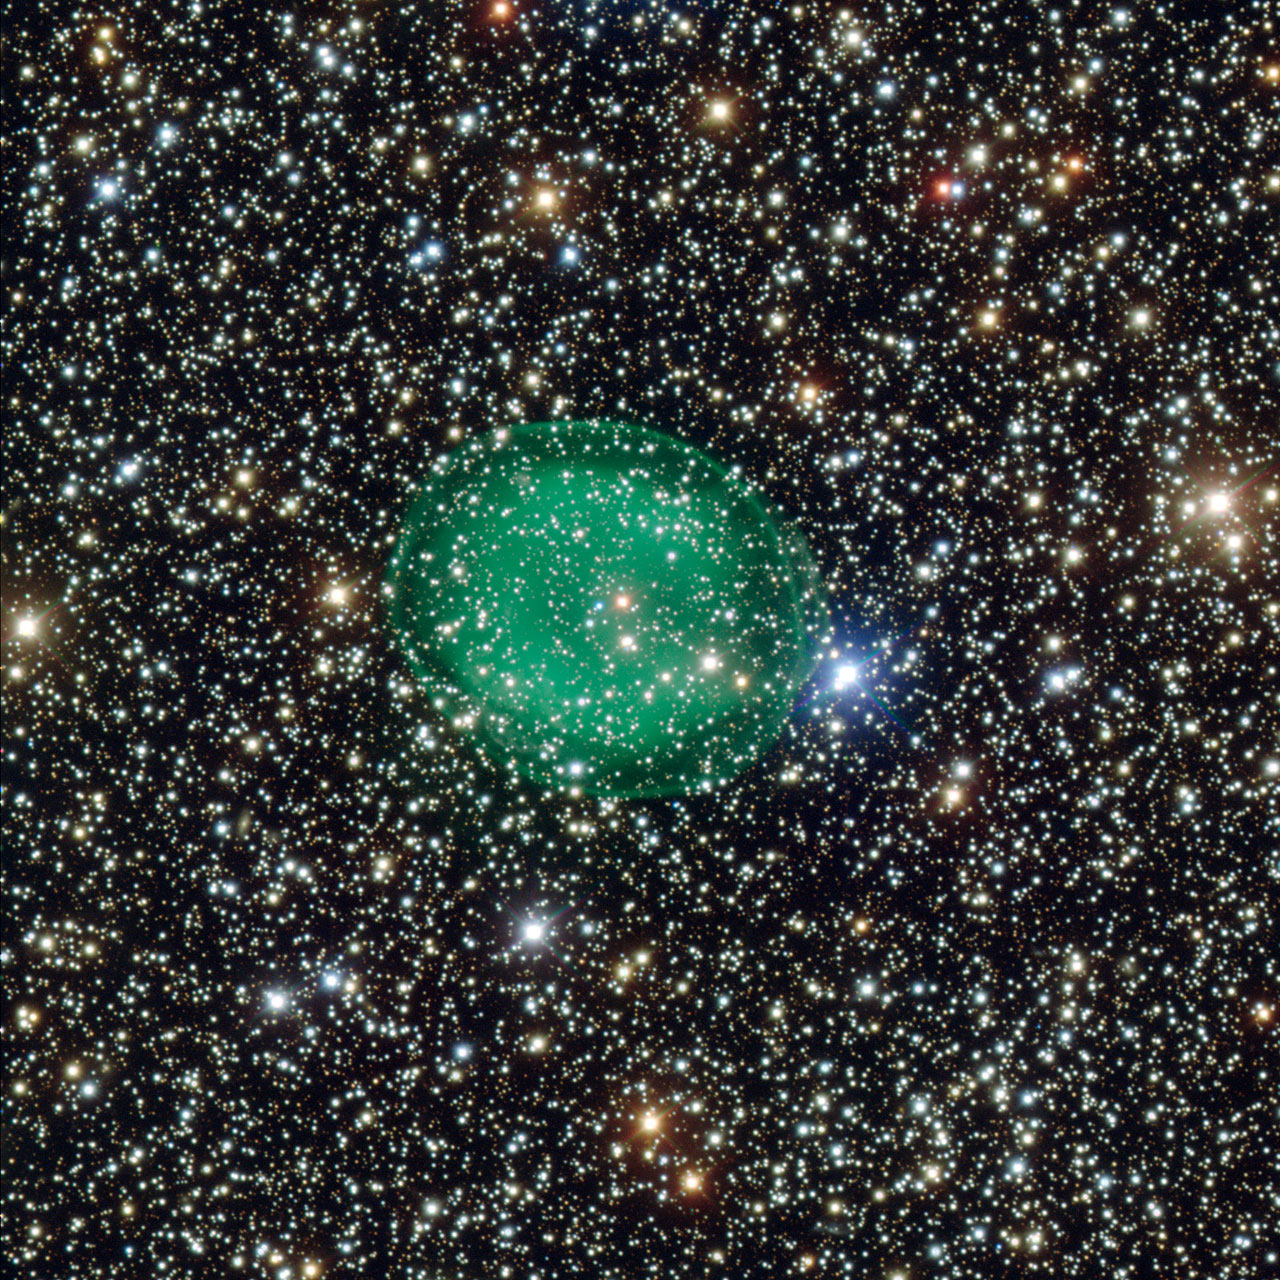 This intriguing picture from ESO's Very Large Telescope shows the glowing green planetary nebula IC 1295 surrounding a dim and dying star. It is located about 3300 light-years away in the constellation of Scutum (The Shield). This is the most detailed picture of this object ever taken.